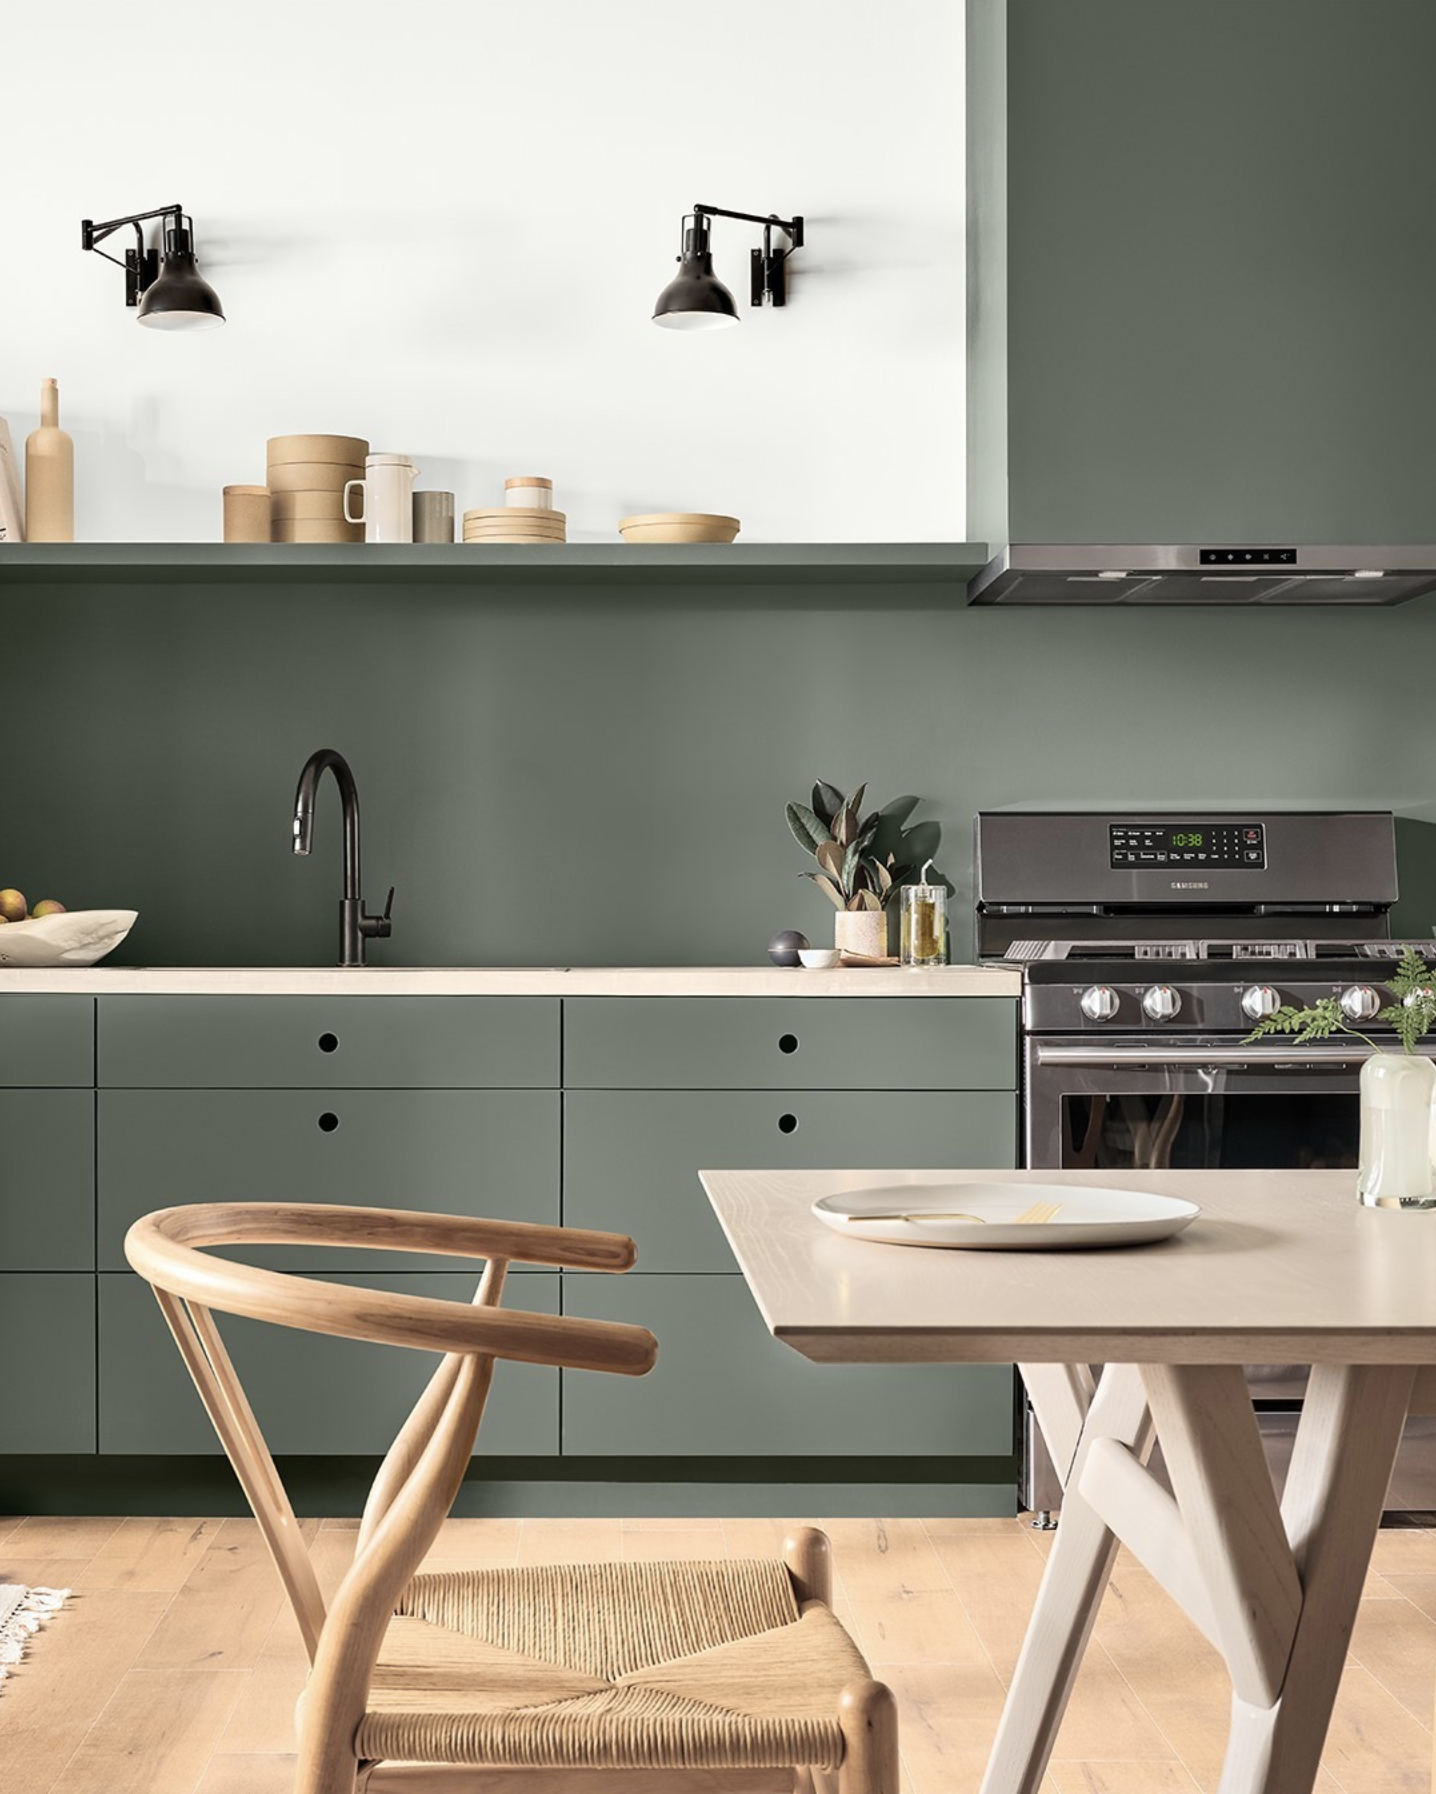 IMAGE: via @sherwinwilliams feat. paint color 'Pewter Green' from Sherwin Williams